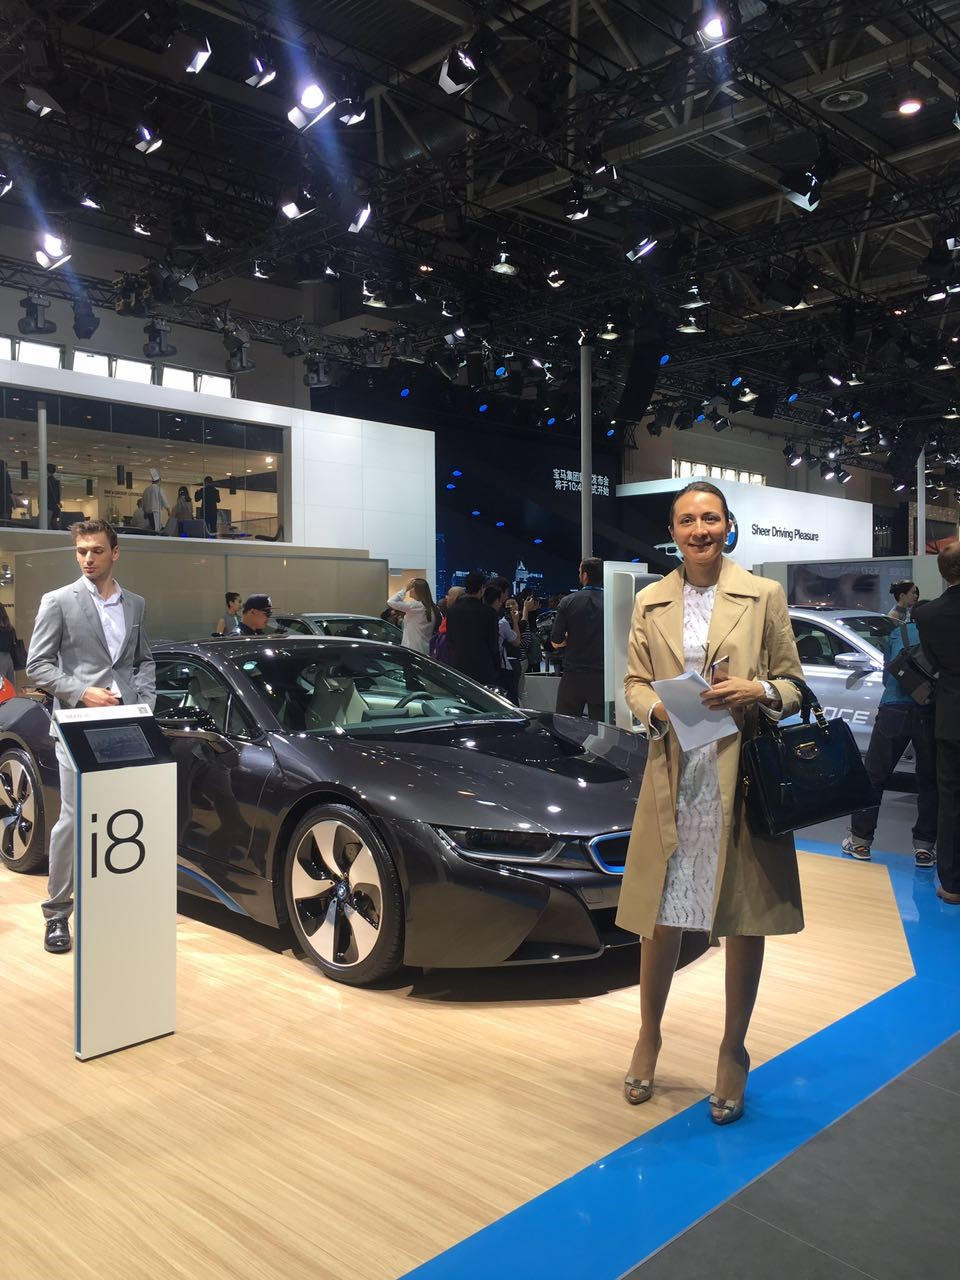 Liase Group's Vanessa Moriel poses in front of BMW's new open-top i8 Spyder Concept launched in Beijing. The new model is a convertible version of the i8 plug-in hybrid sports car.